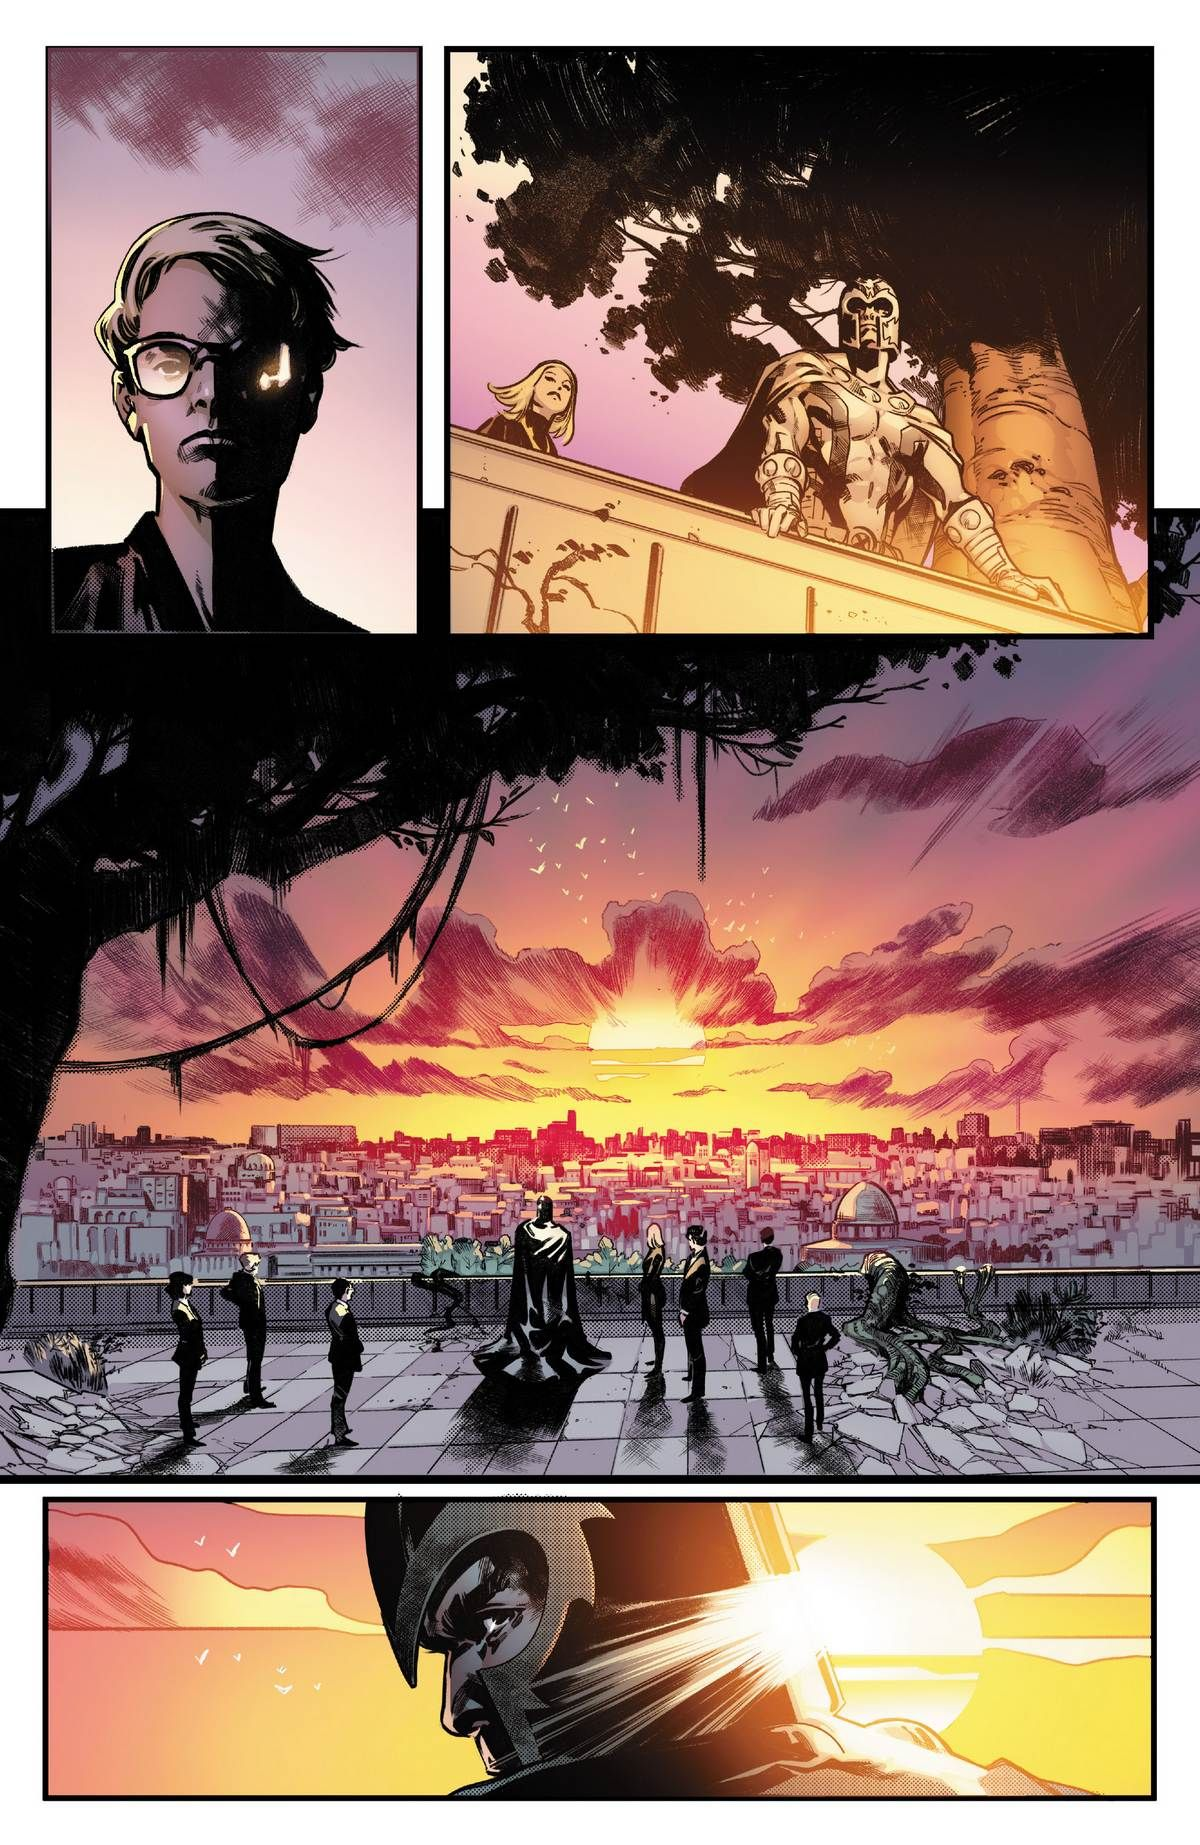 Full Issue Of House Of X Issue 1 Online In 2020 Xmen Comics Favorite Character Cyclops X Men